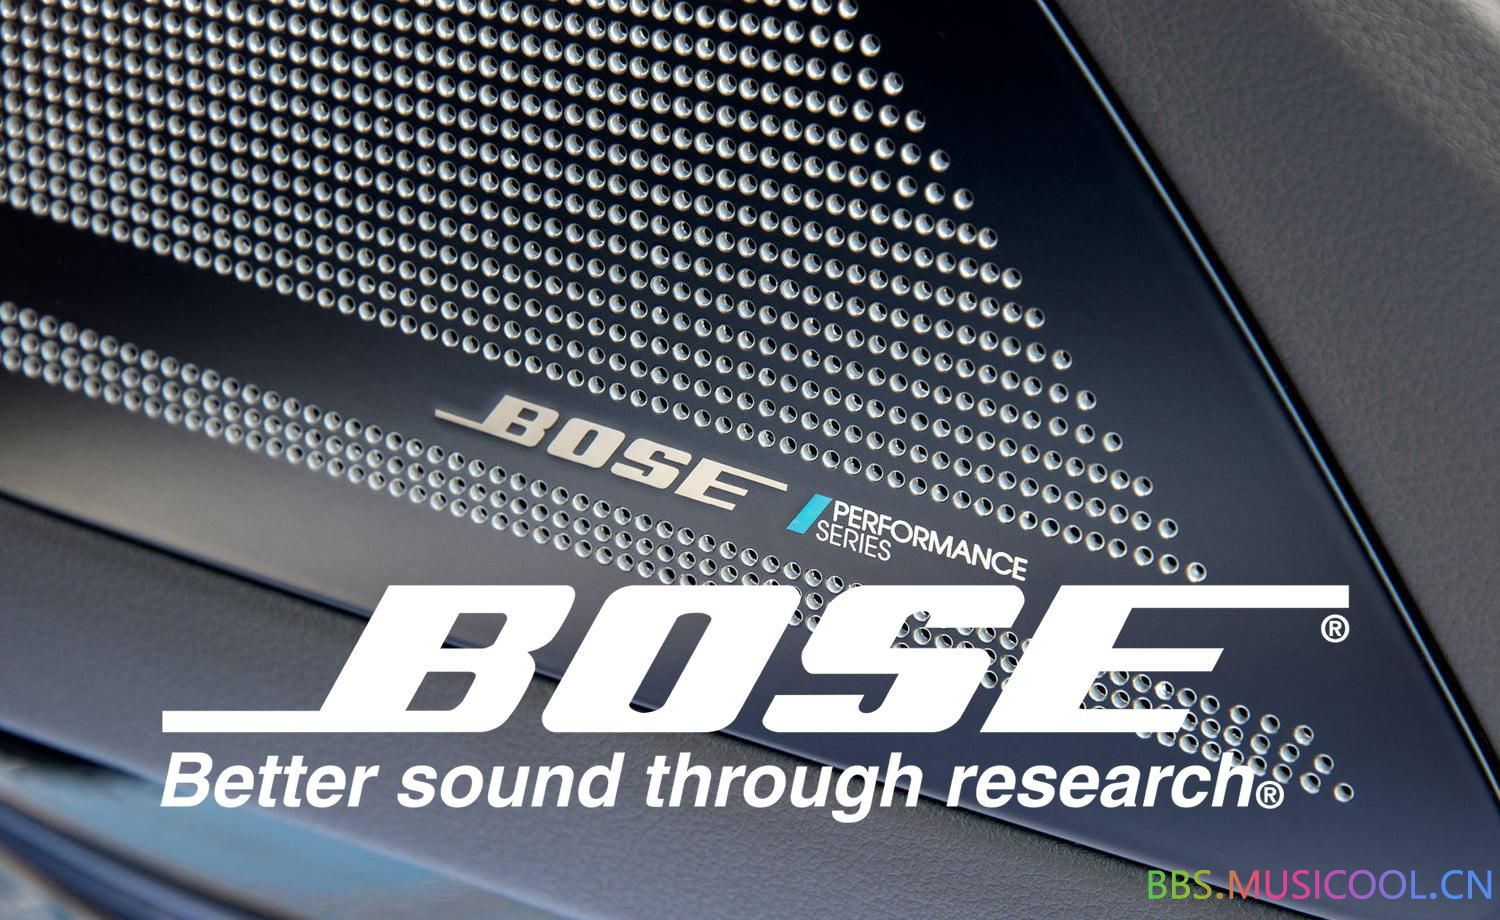 bose_performance_series_small-1500x1000.jpg